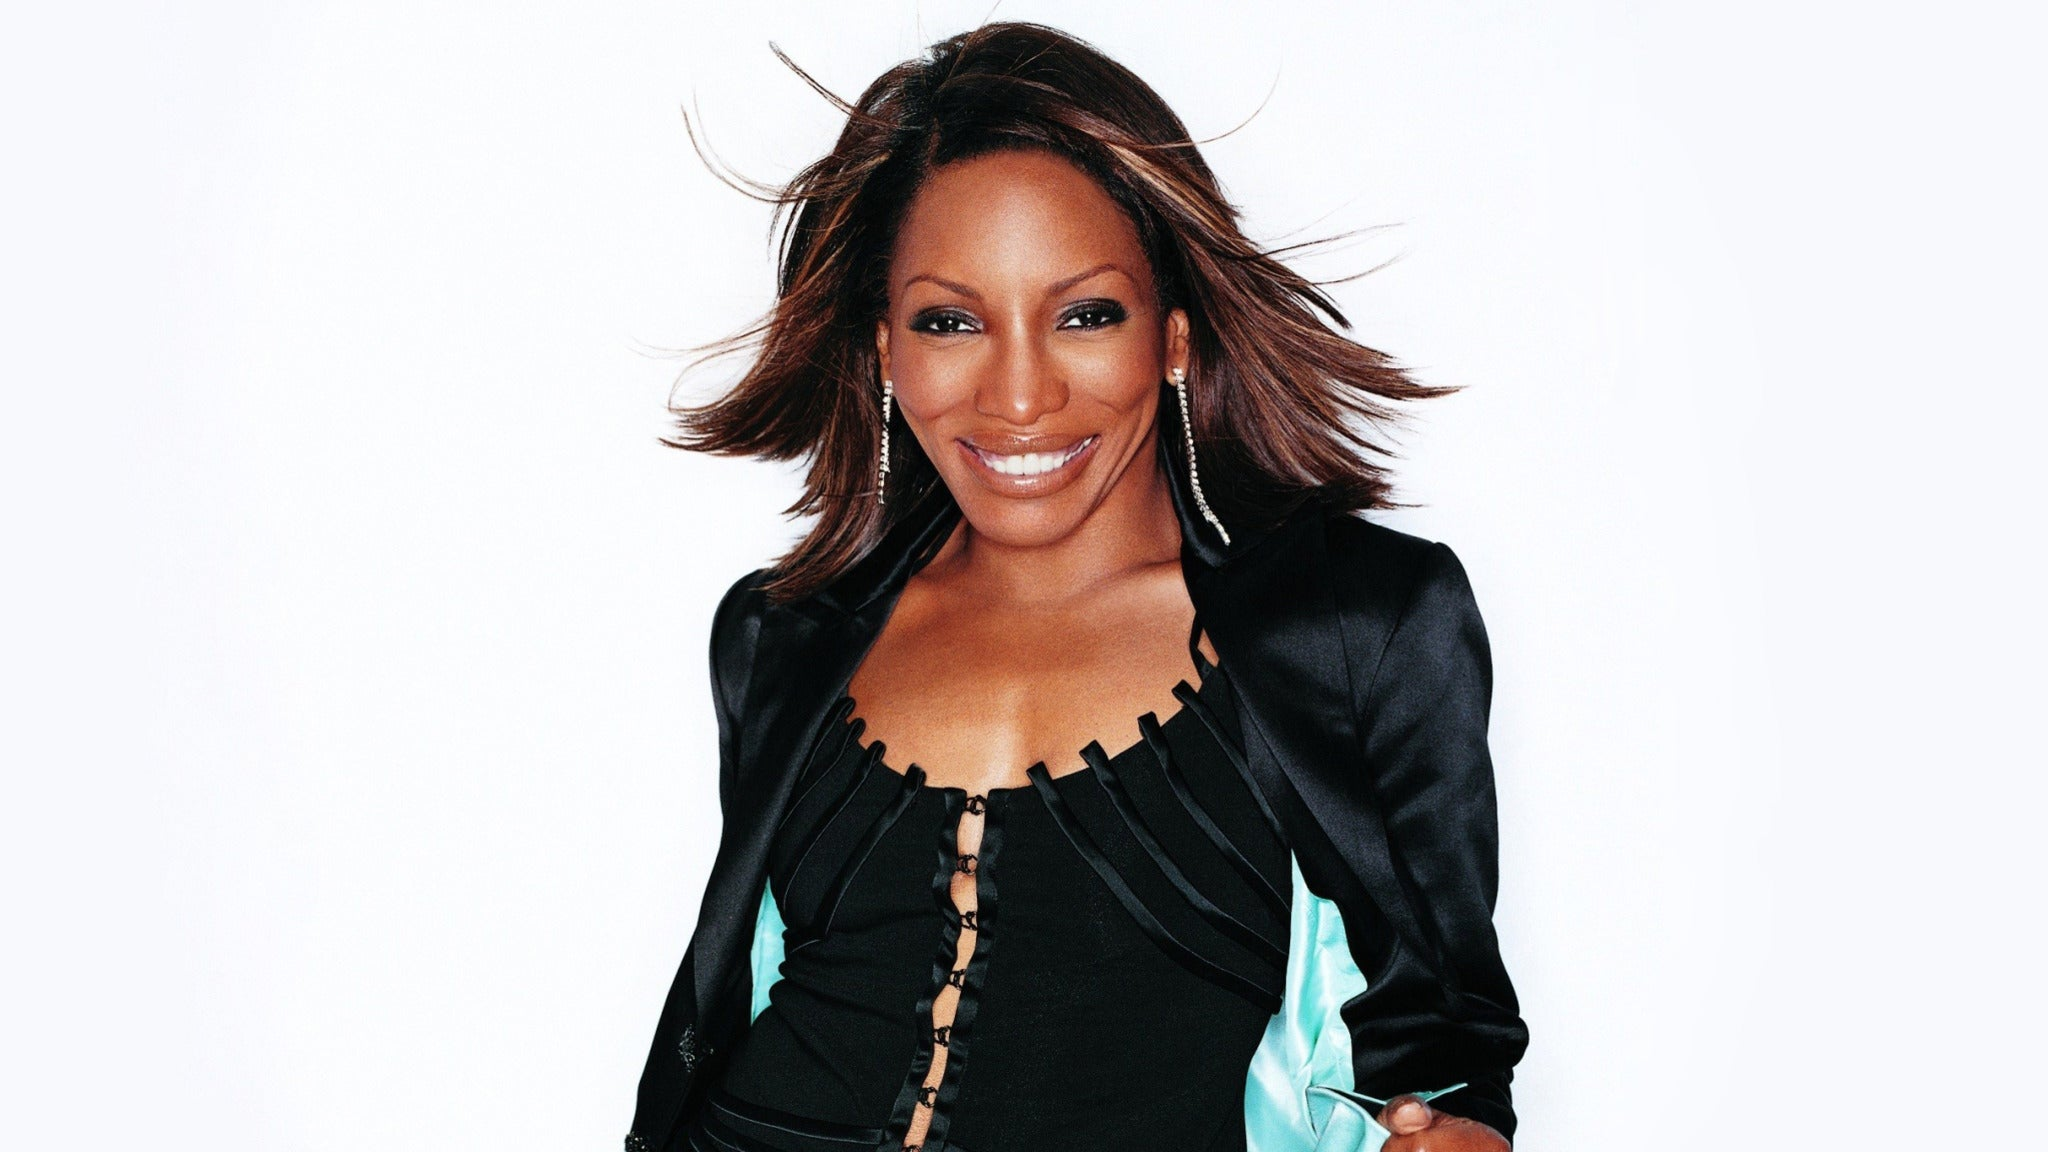 SORRY, THIS EVENT IS NO LONGER ACTIVE<br>Stephanie Mills at Hollywood Palladium - Hollywood, CA 90028